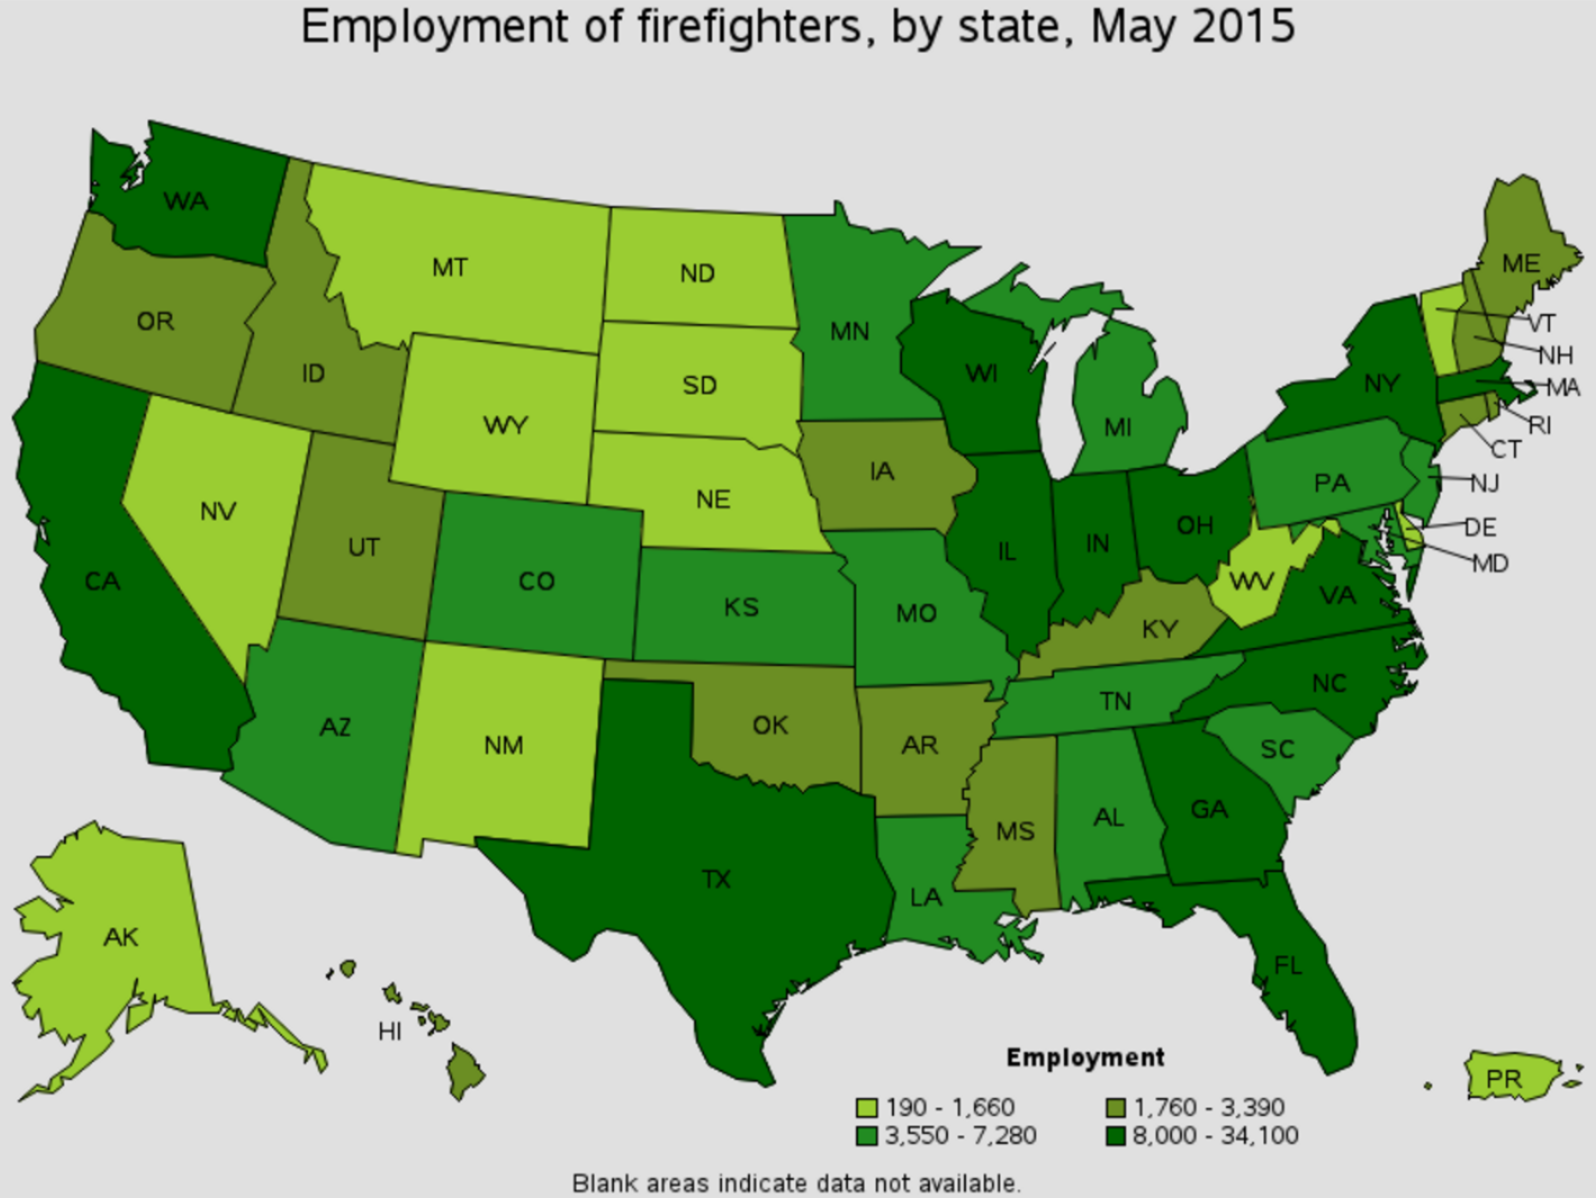 firefighter job outlook by state Lincoln Nebraska